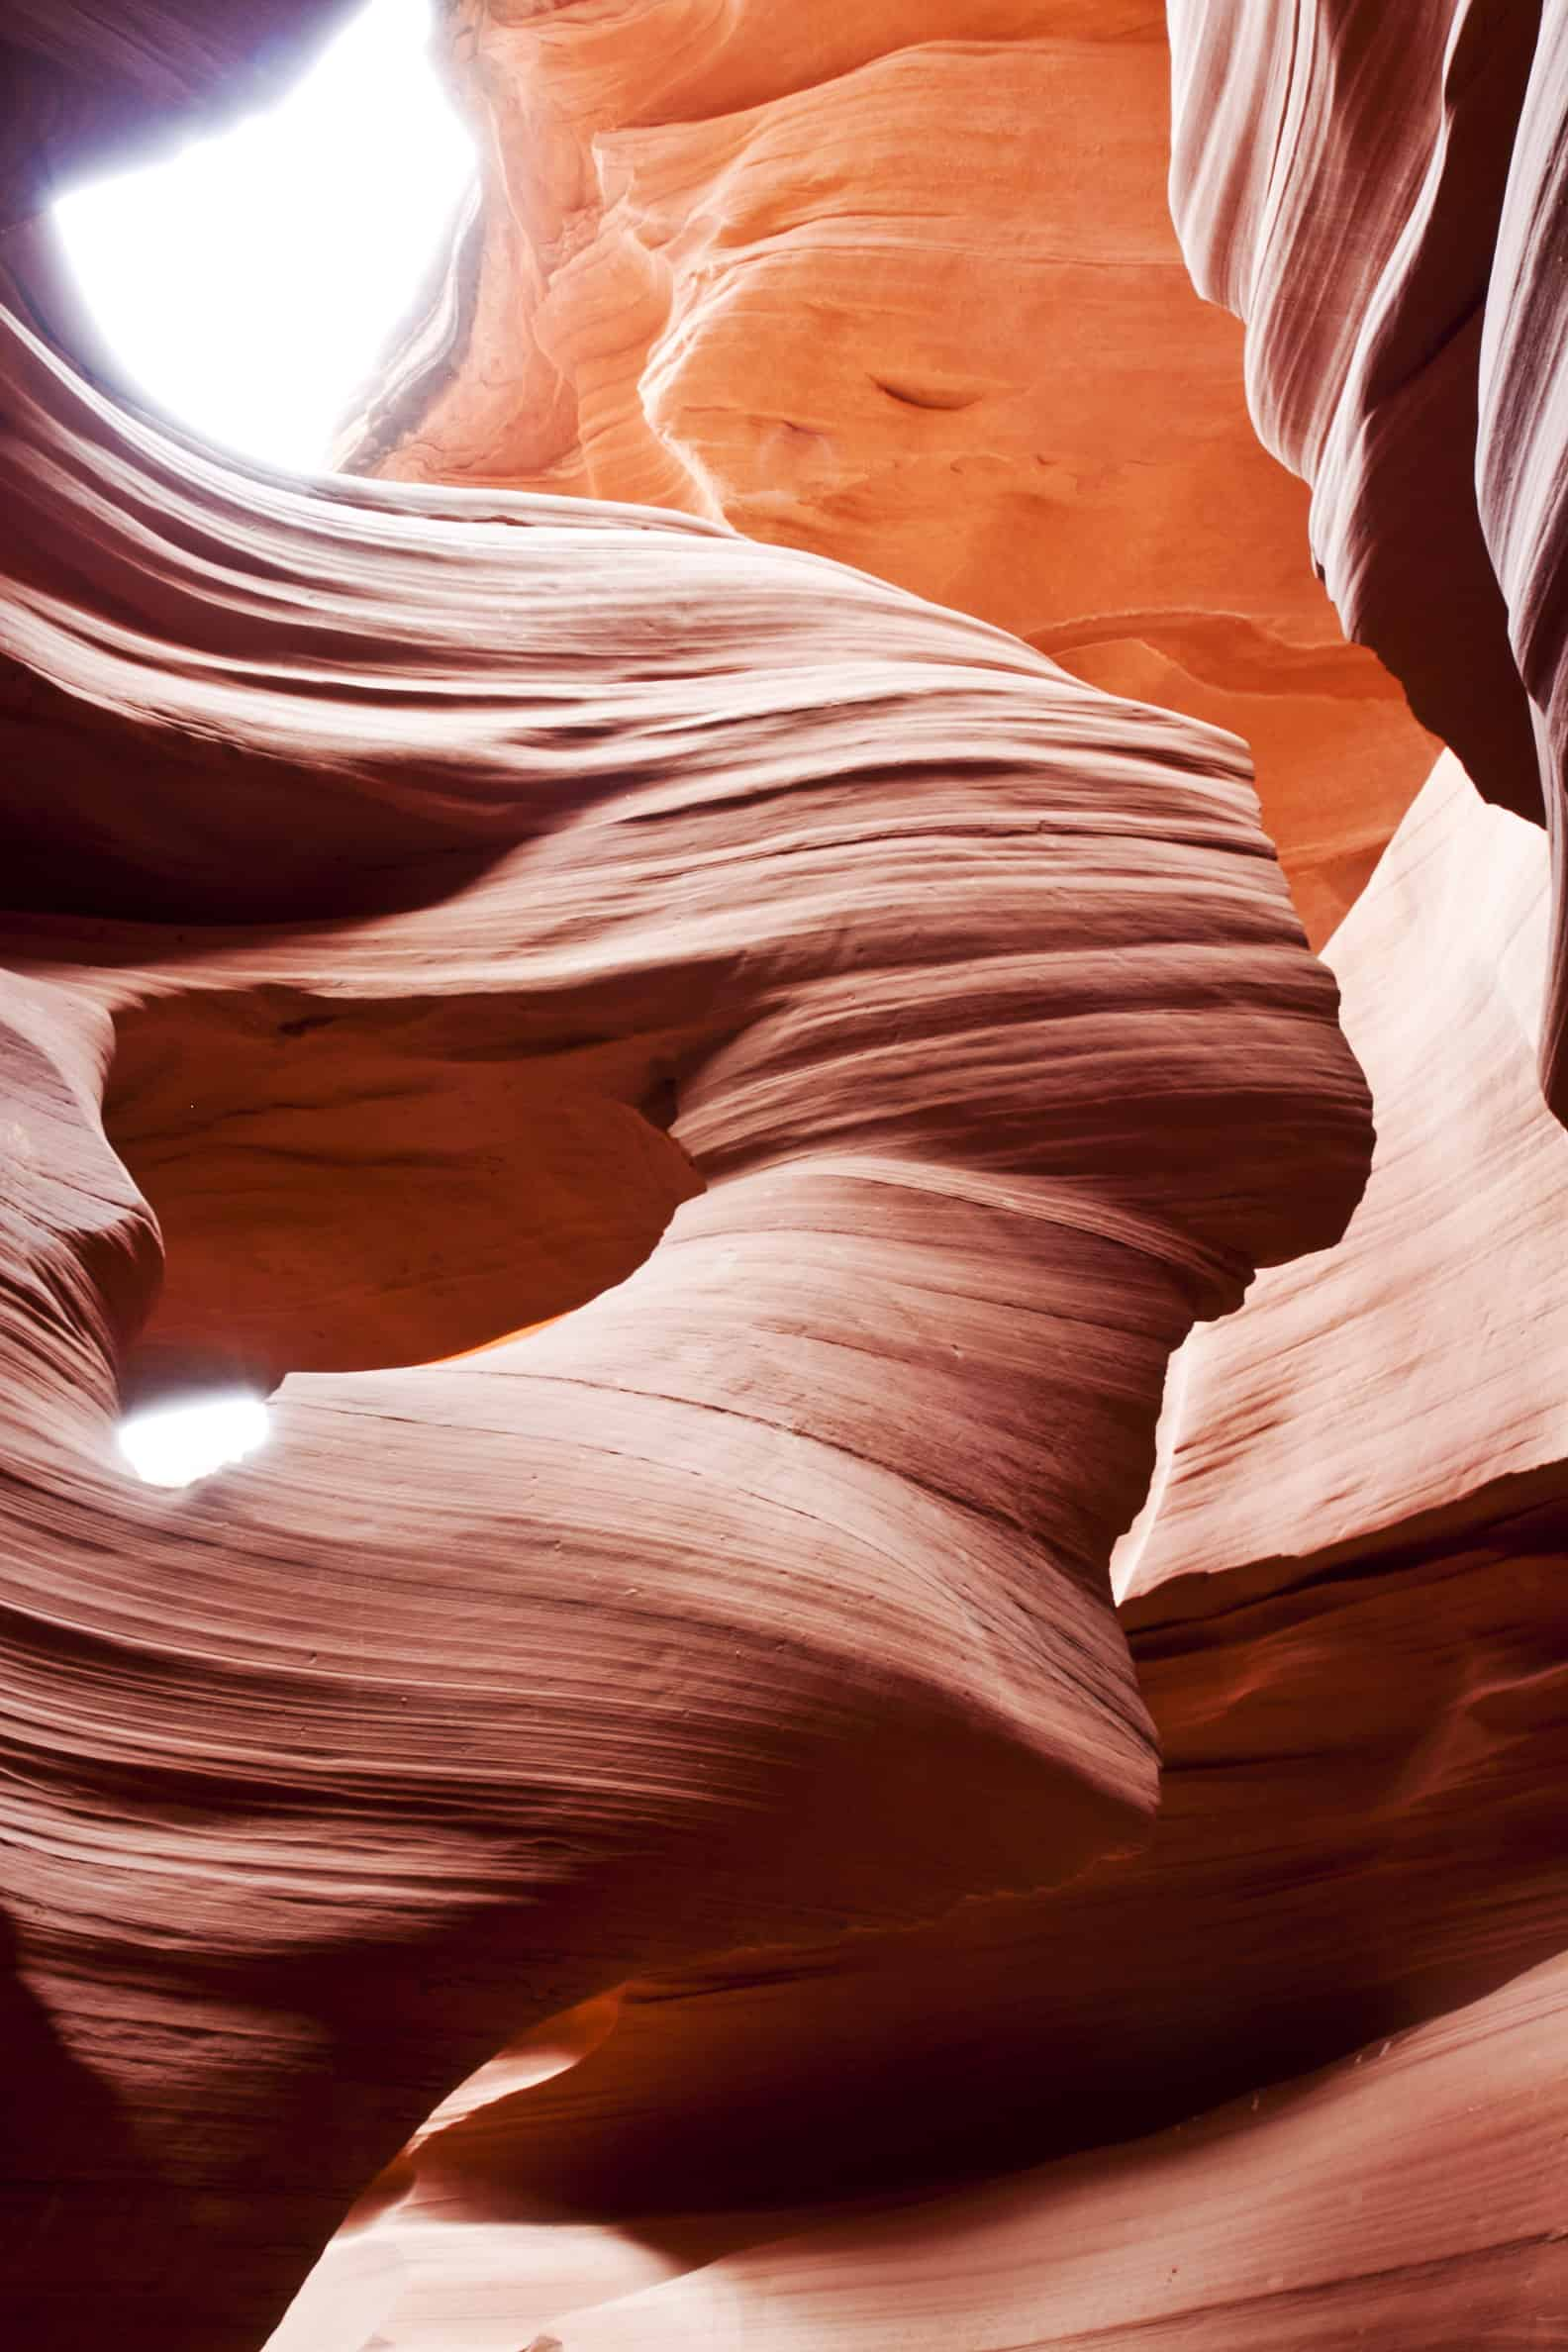 Twisting rocks Forms a Shape of a Girl in the Slot Canyon